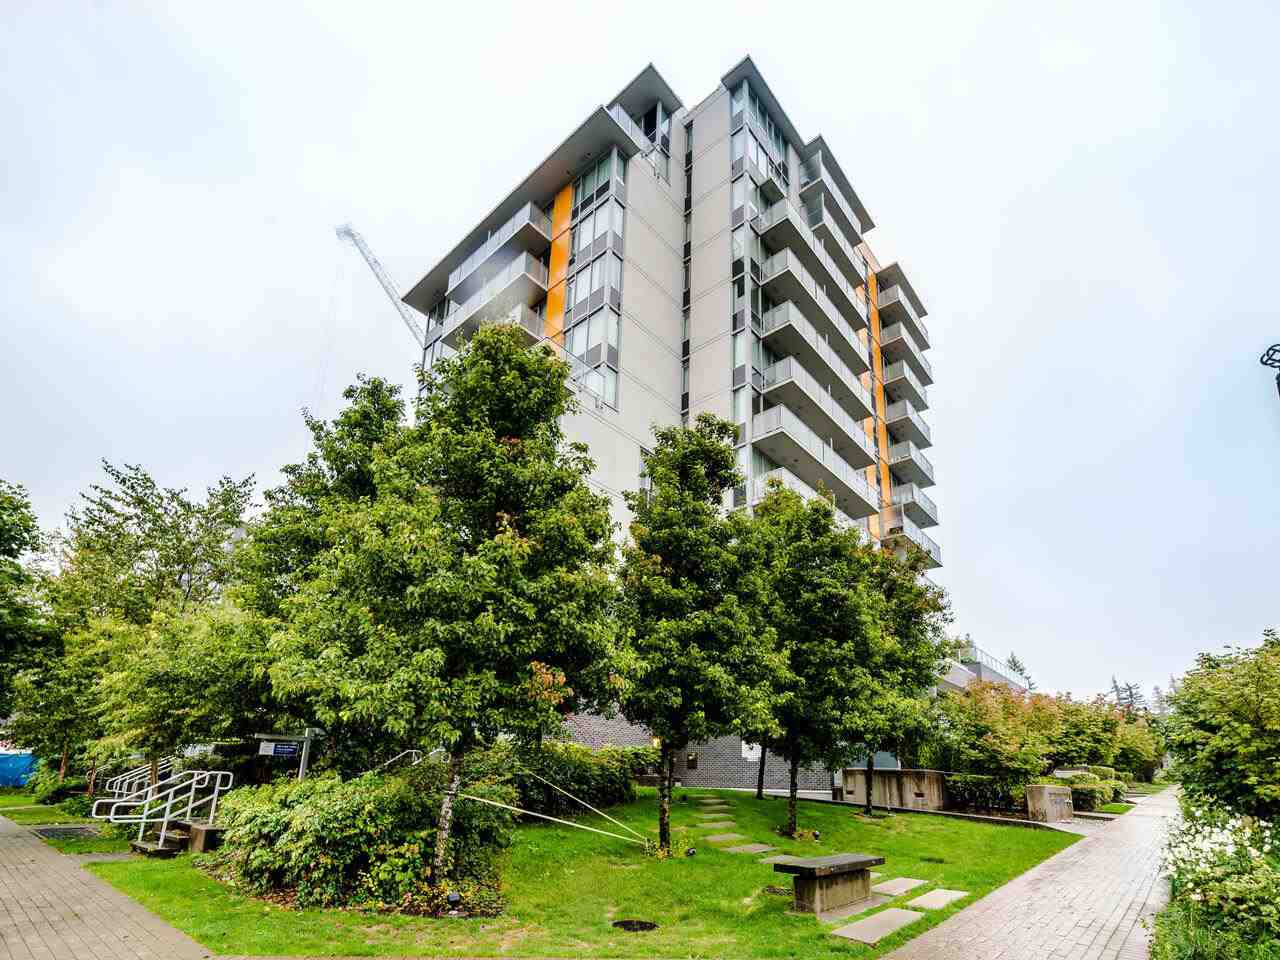 Main Photo: 601 9025 HIGHLAND COURT in Burnaby: Simon Fraser Univer. Condo for sale (Burnaby North)  : MLS®# R2506952